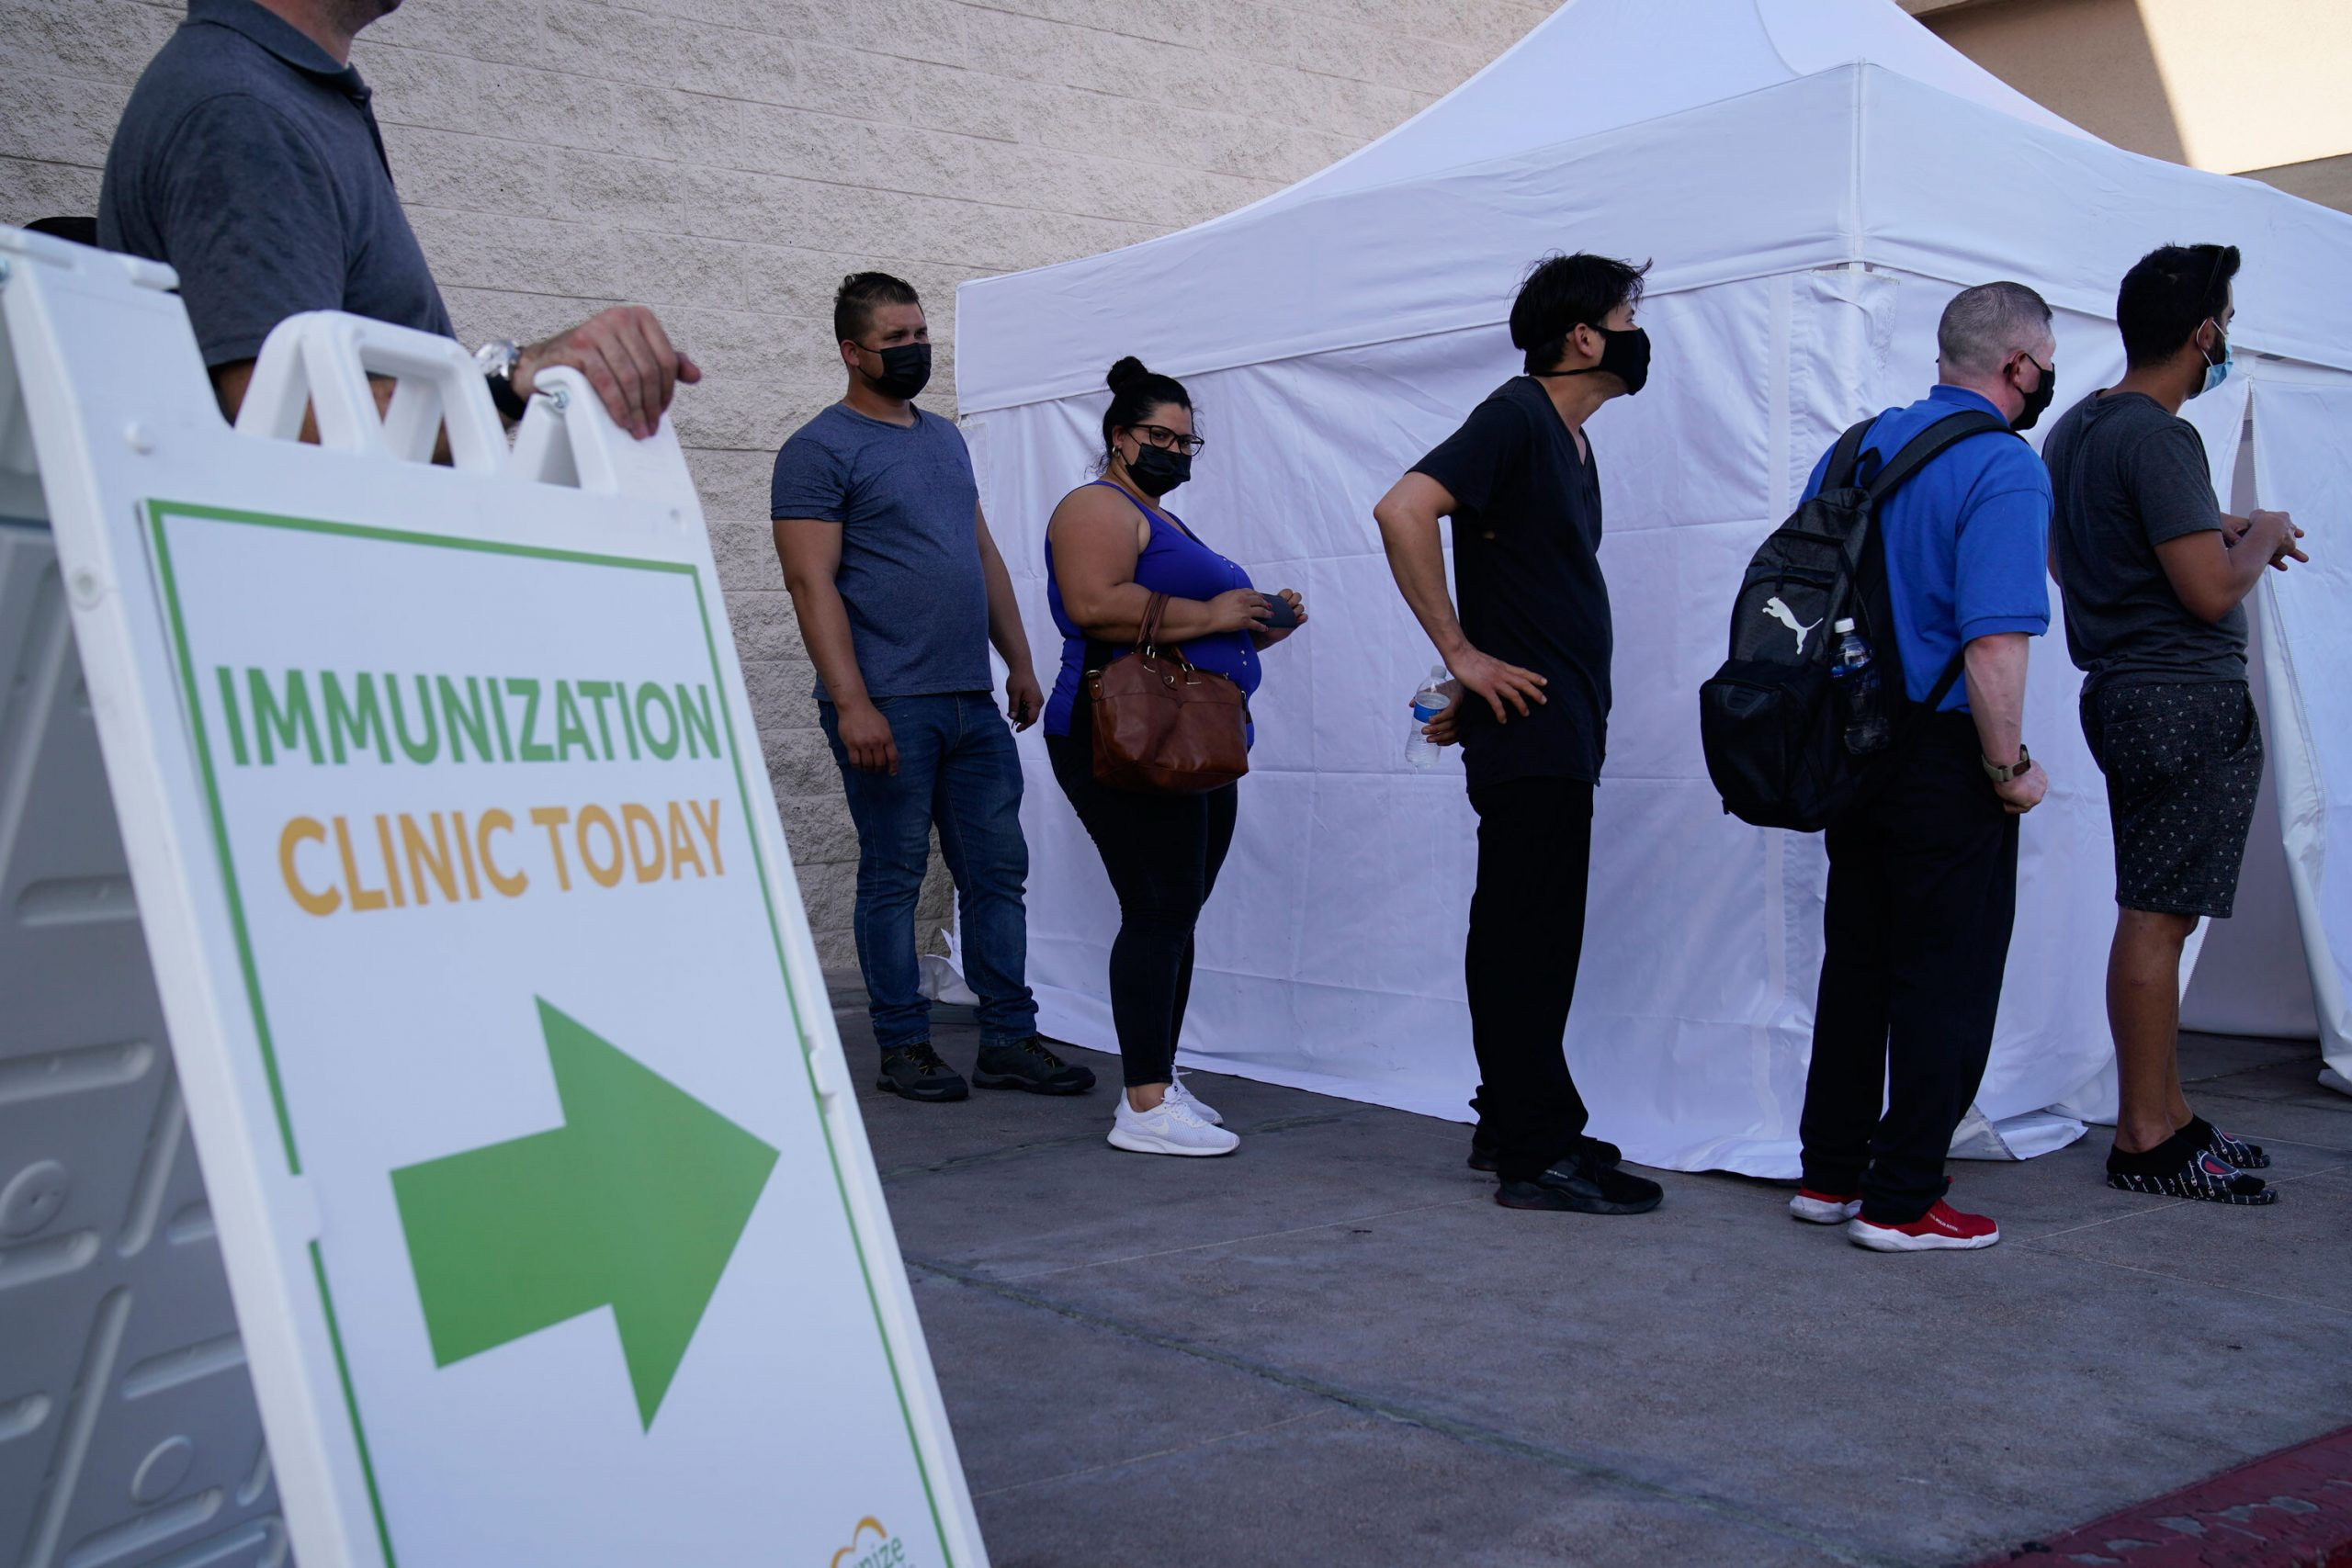 <i>John Locher/AP</i><br/>People wait in line for Covid-19 vaccinations at an event at La Bonita market